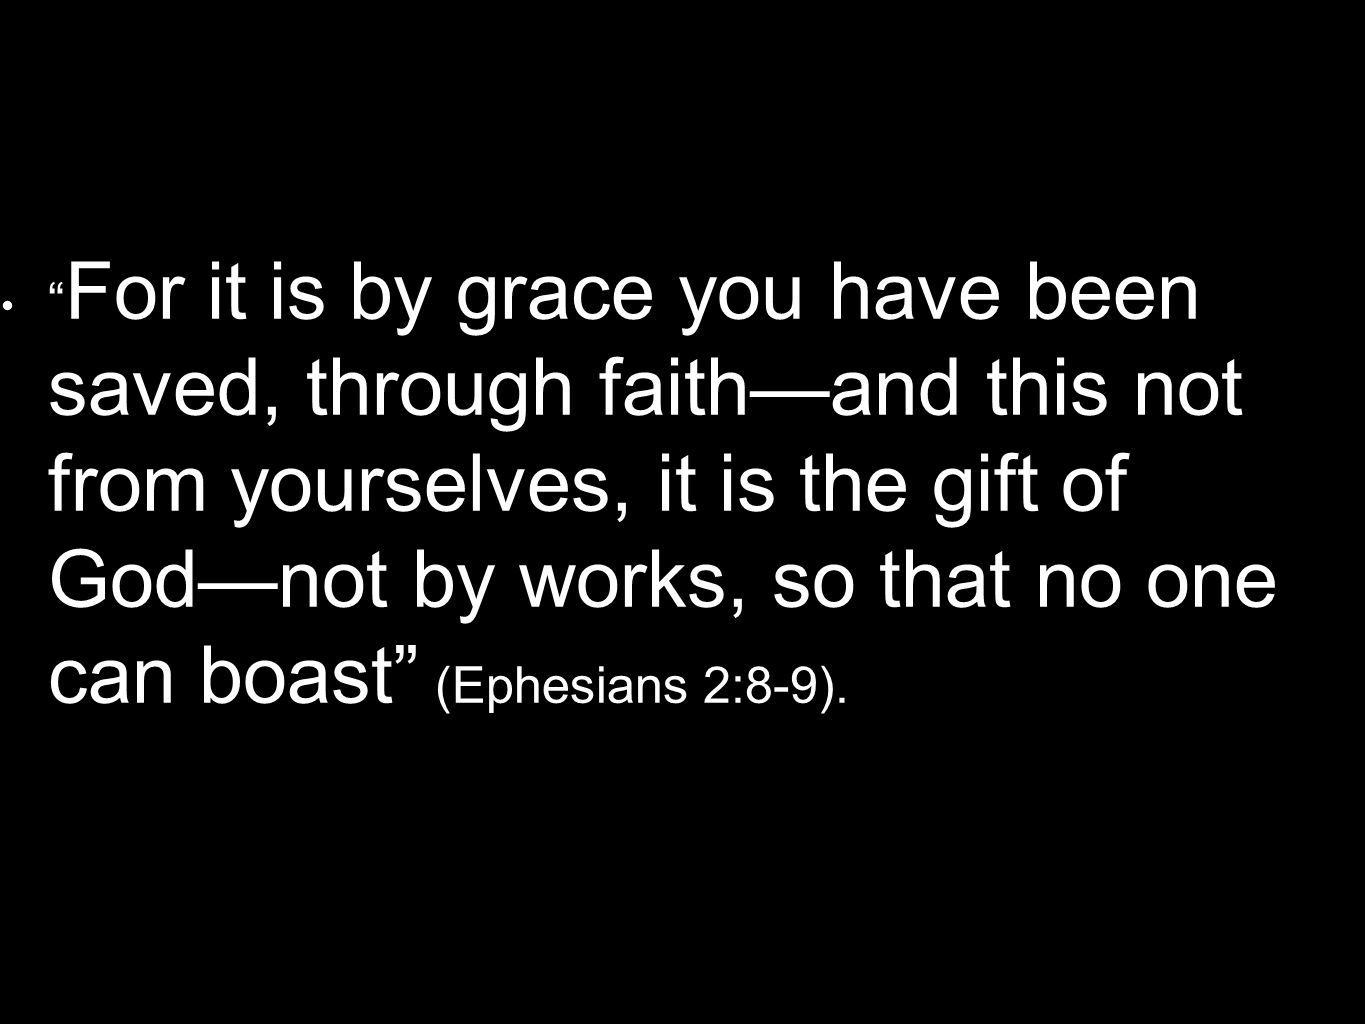 For it is by grace you have been saved, through faithand this not from yourselves, it is the gift of Godnot by works, so that no one can boast (Ephesi